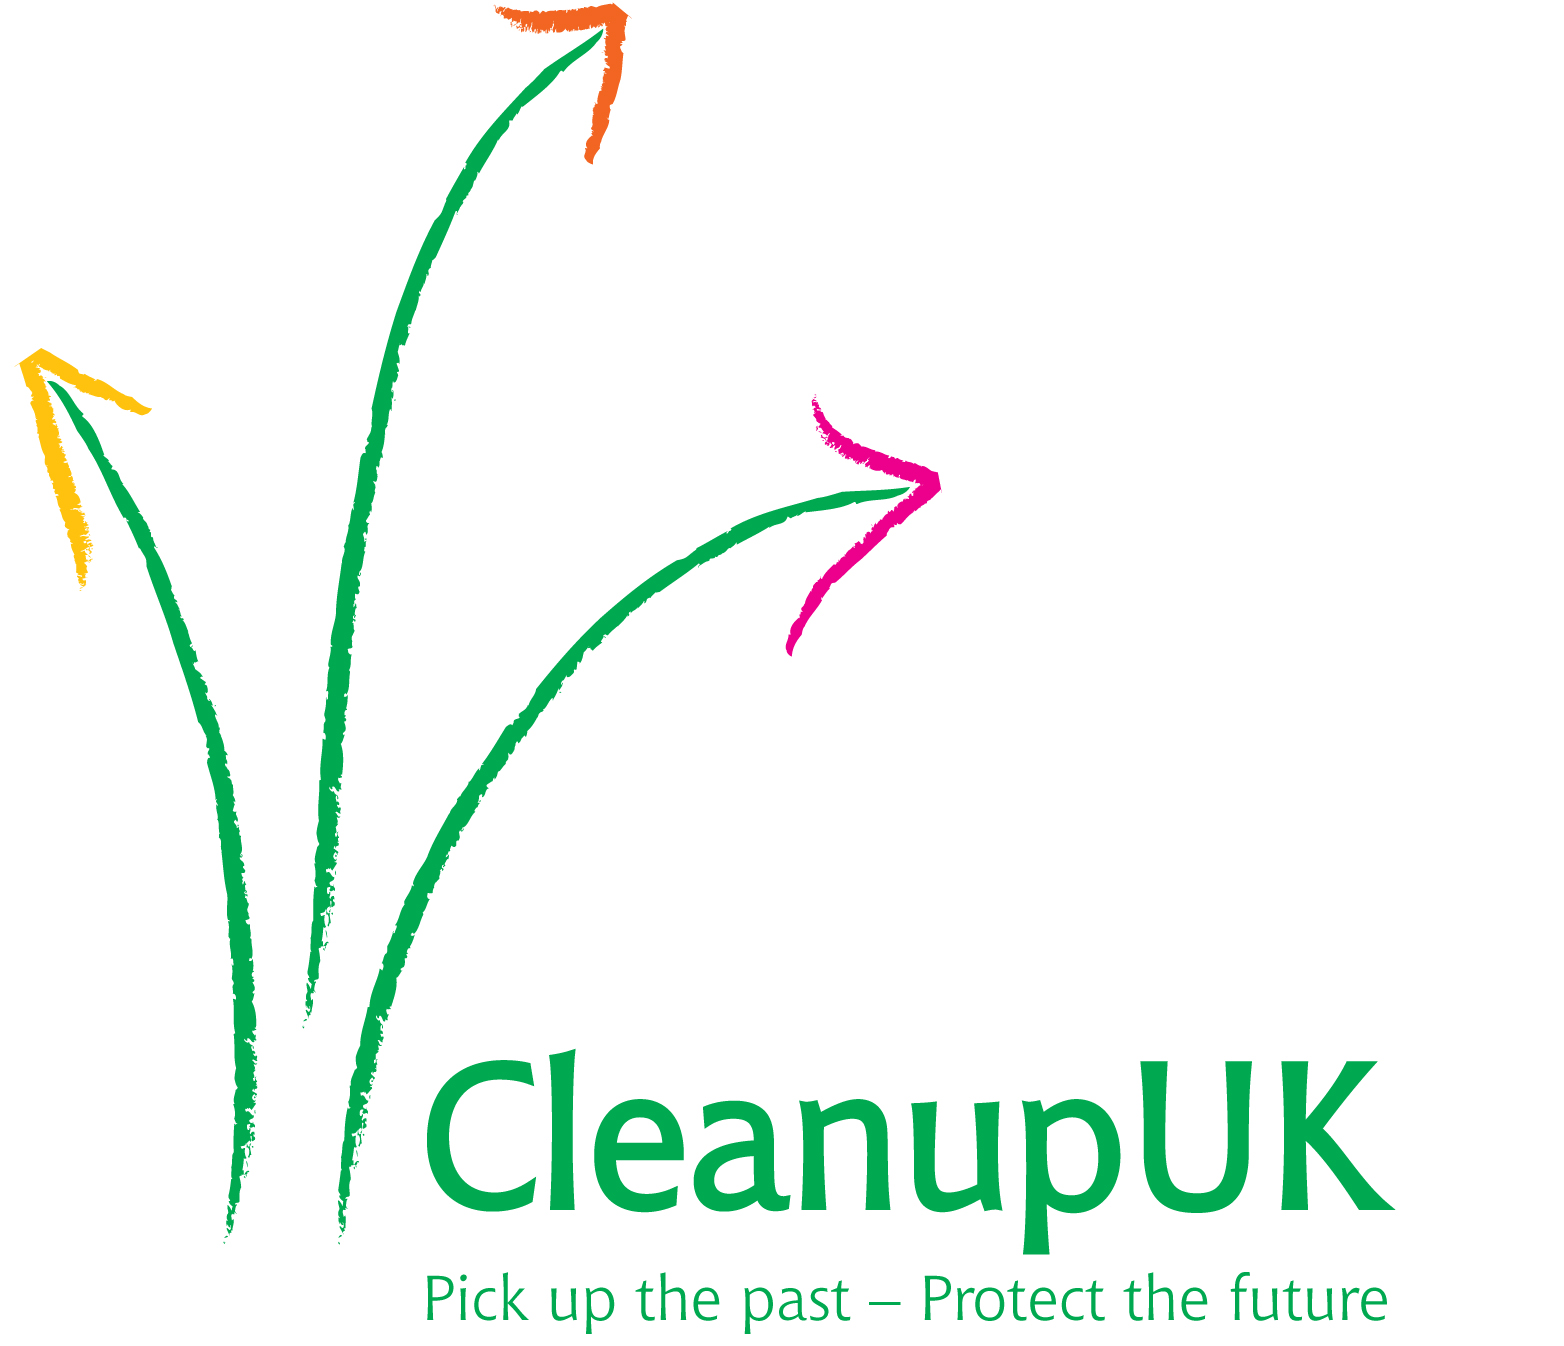 Cleanup UK